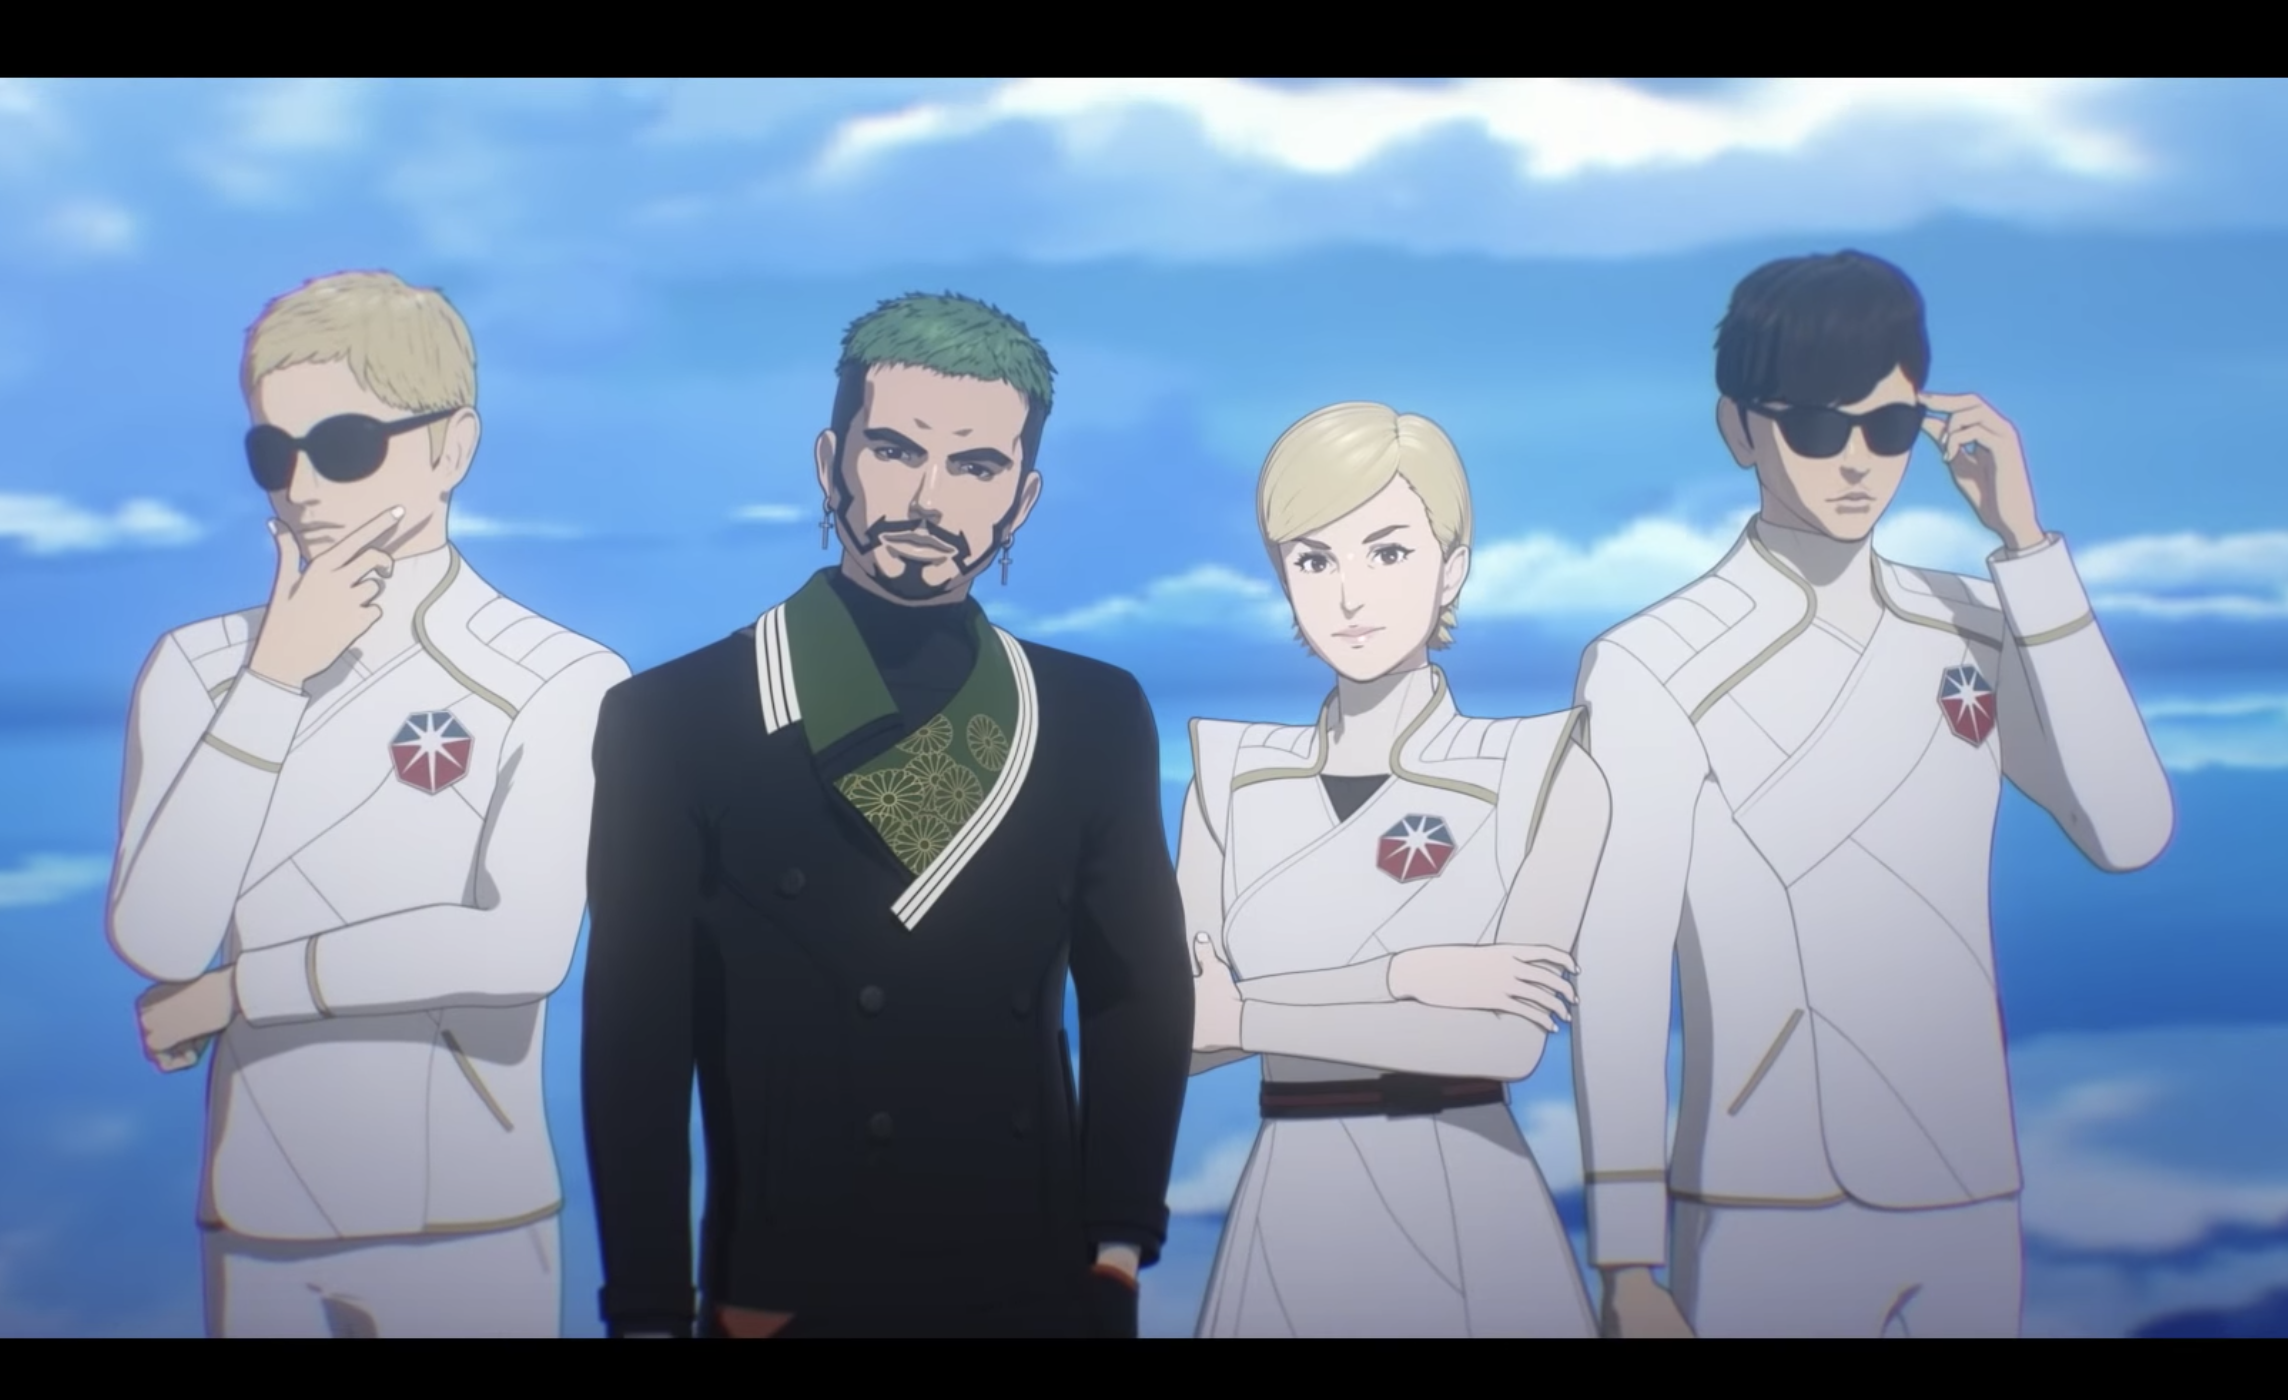 J Balvin Plays Anime Action Hero With M Flo In Human Lost Video Rolling Stone